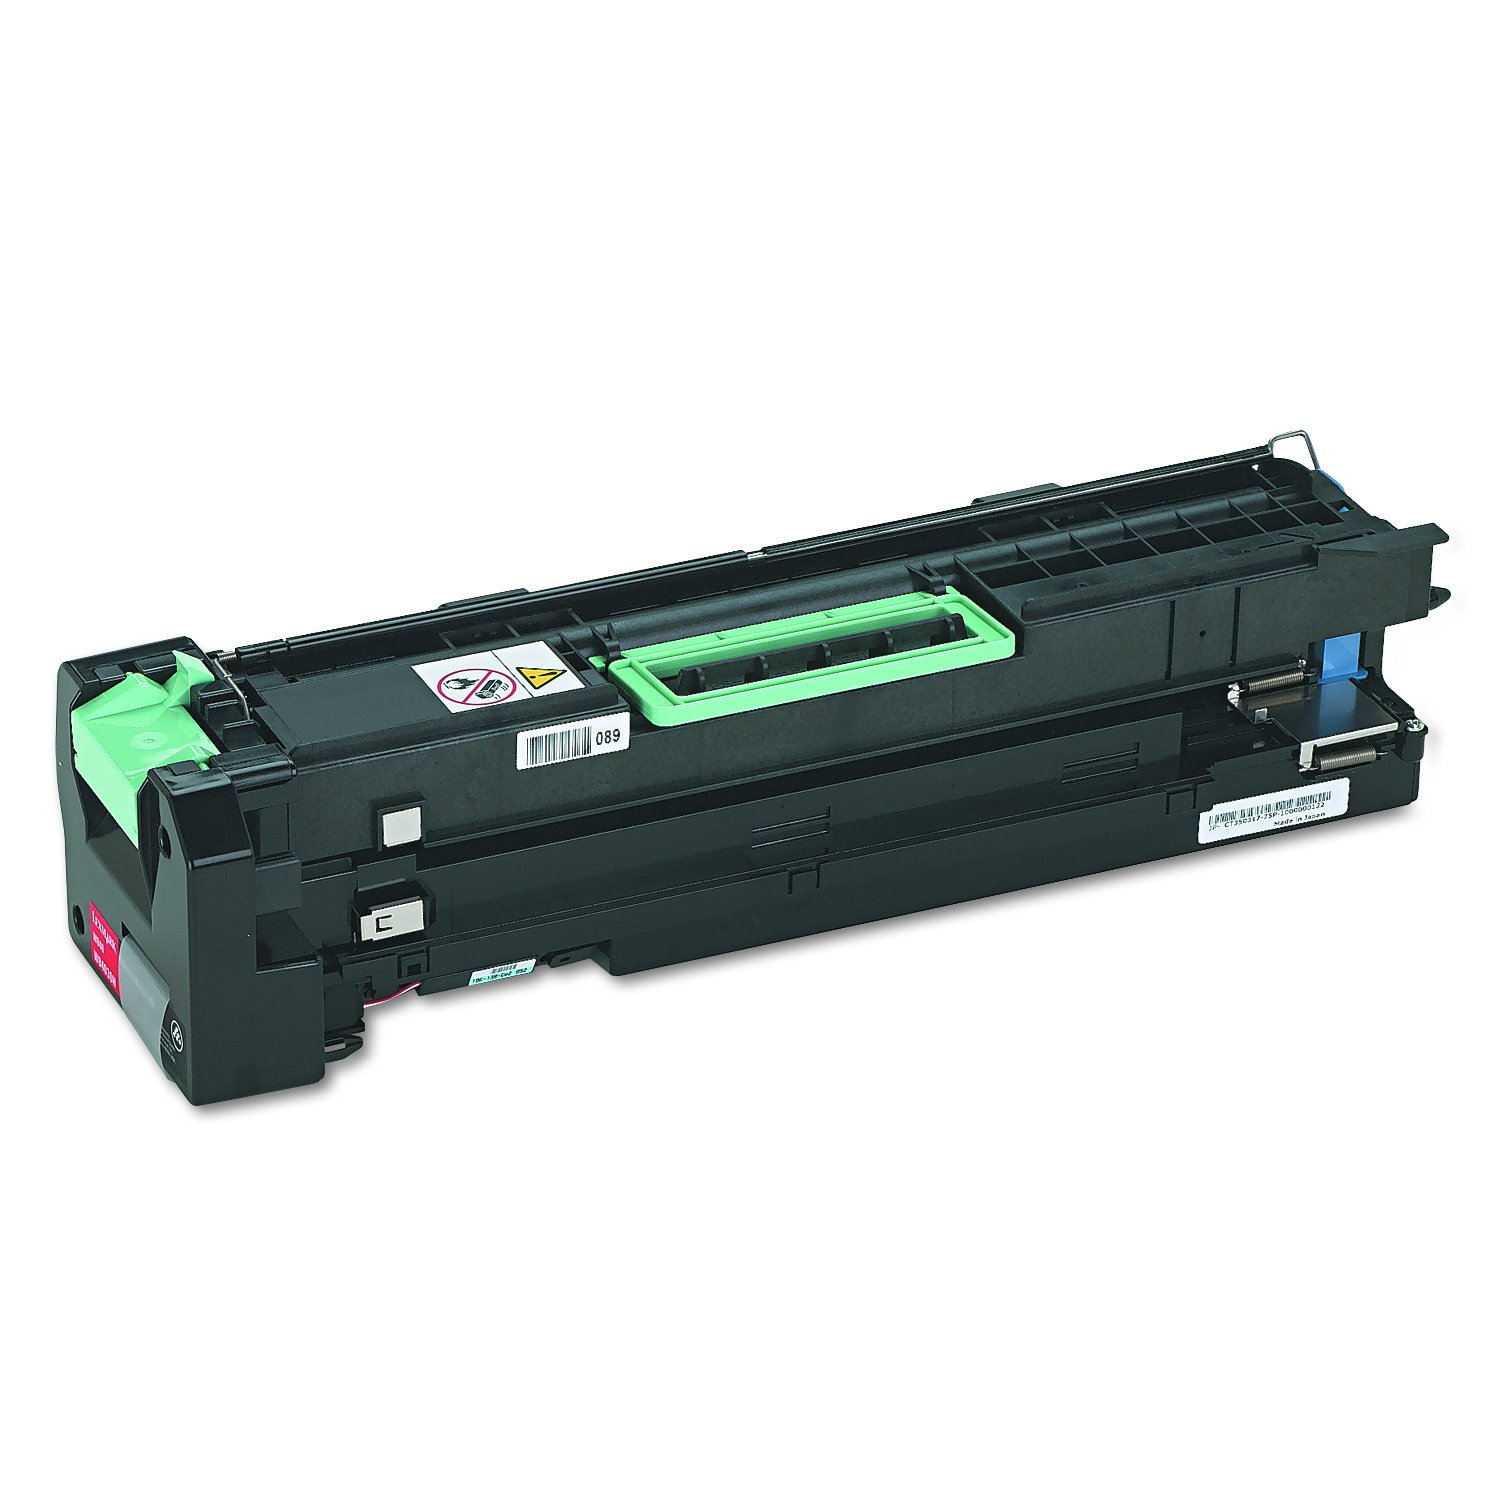 Lexmark W84030H Photoconductor Kit for W840 Series Printers by Lexmark